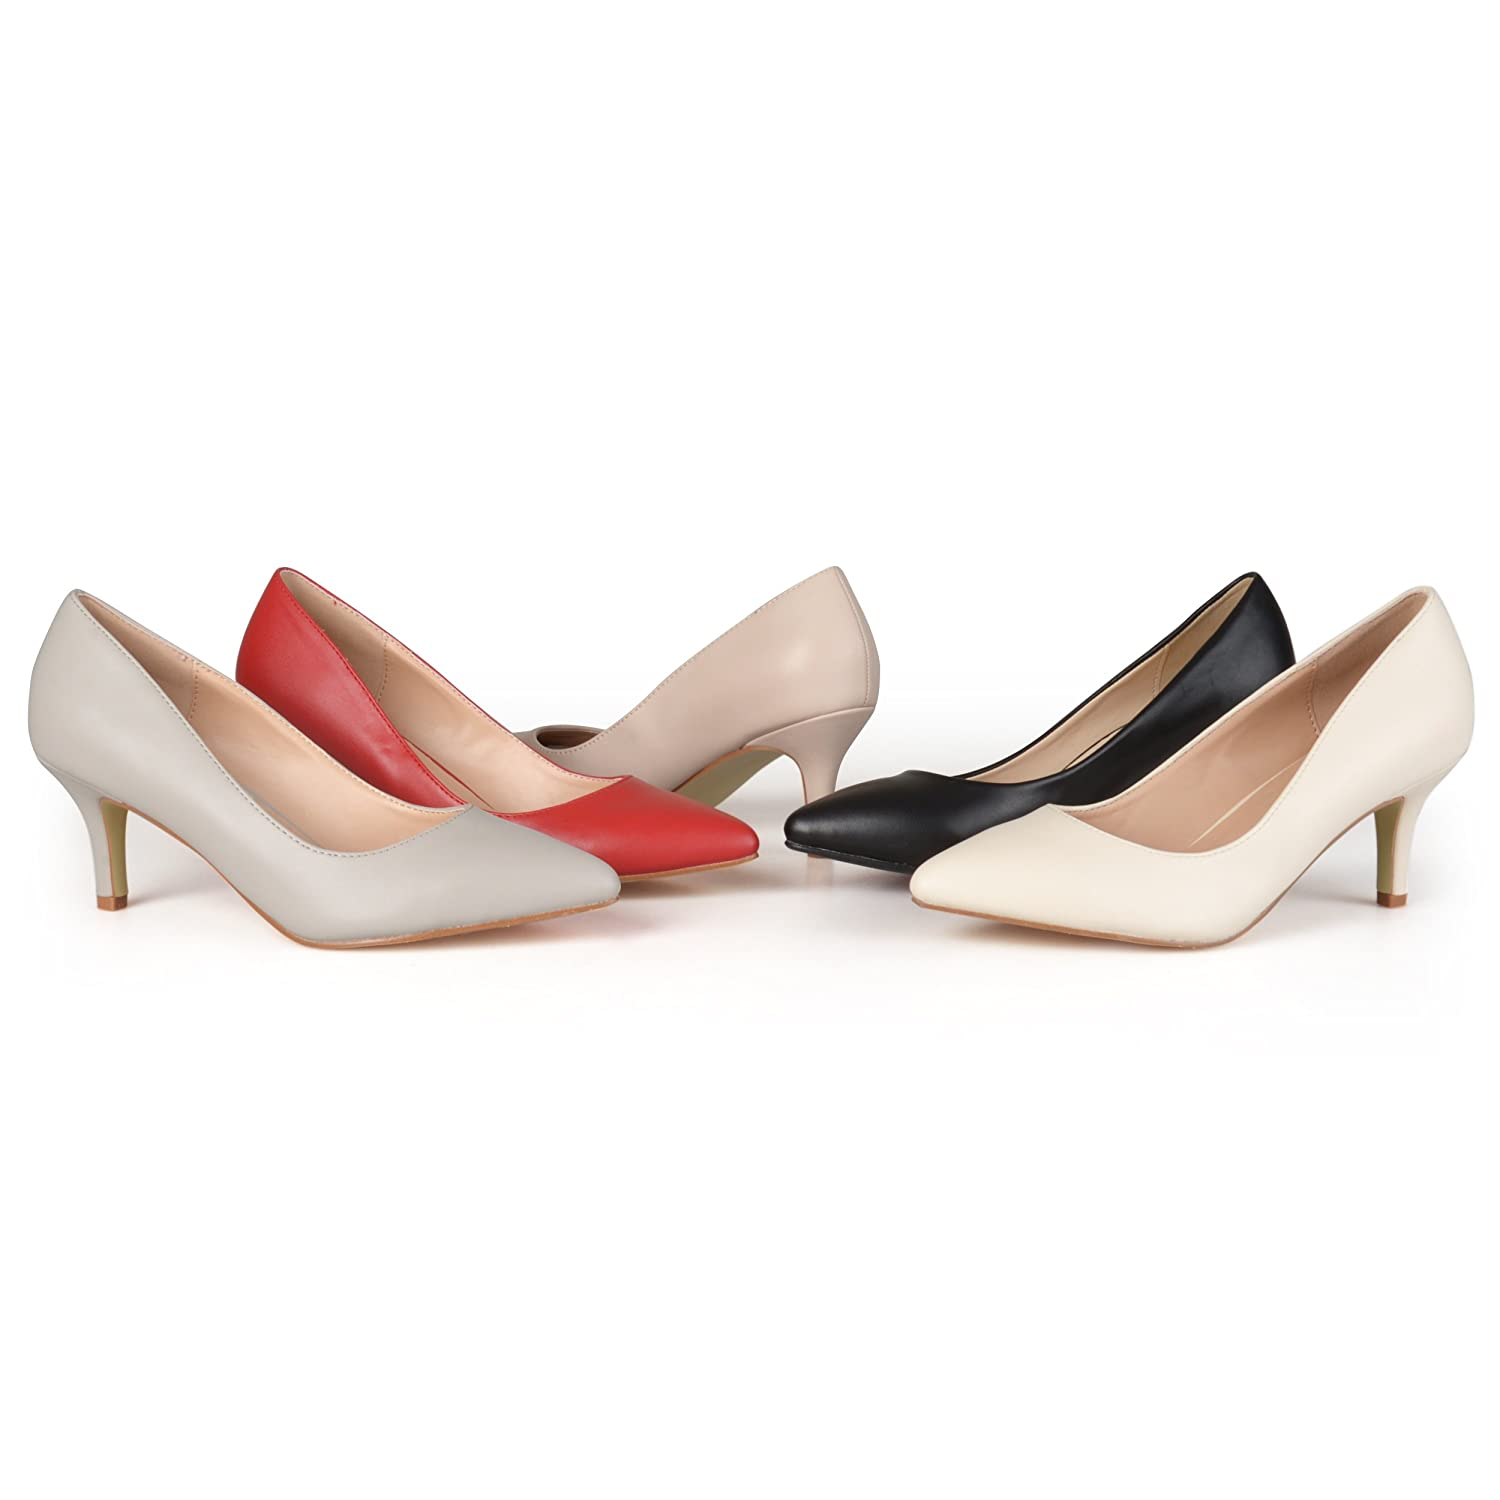 Retro & Vintage Style Shoes Brinley Co. Womens Classic Matte Pointed Toe Pumps $31.51 AT vintagedancer.com